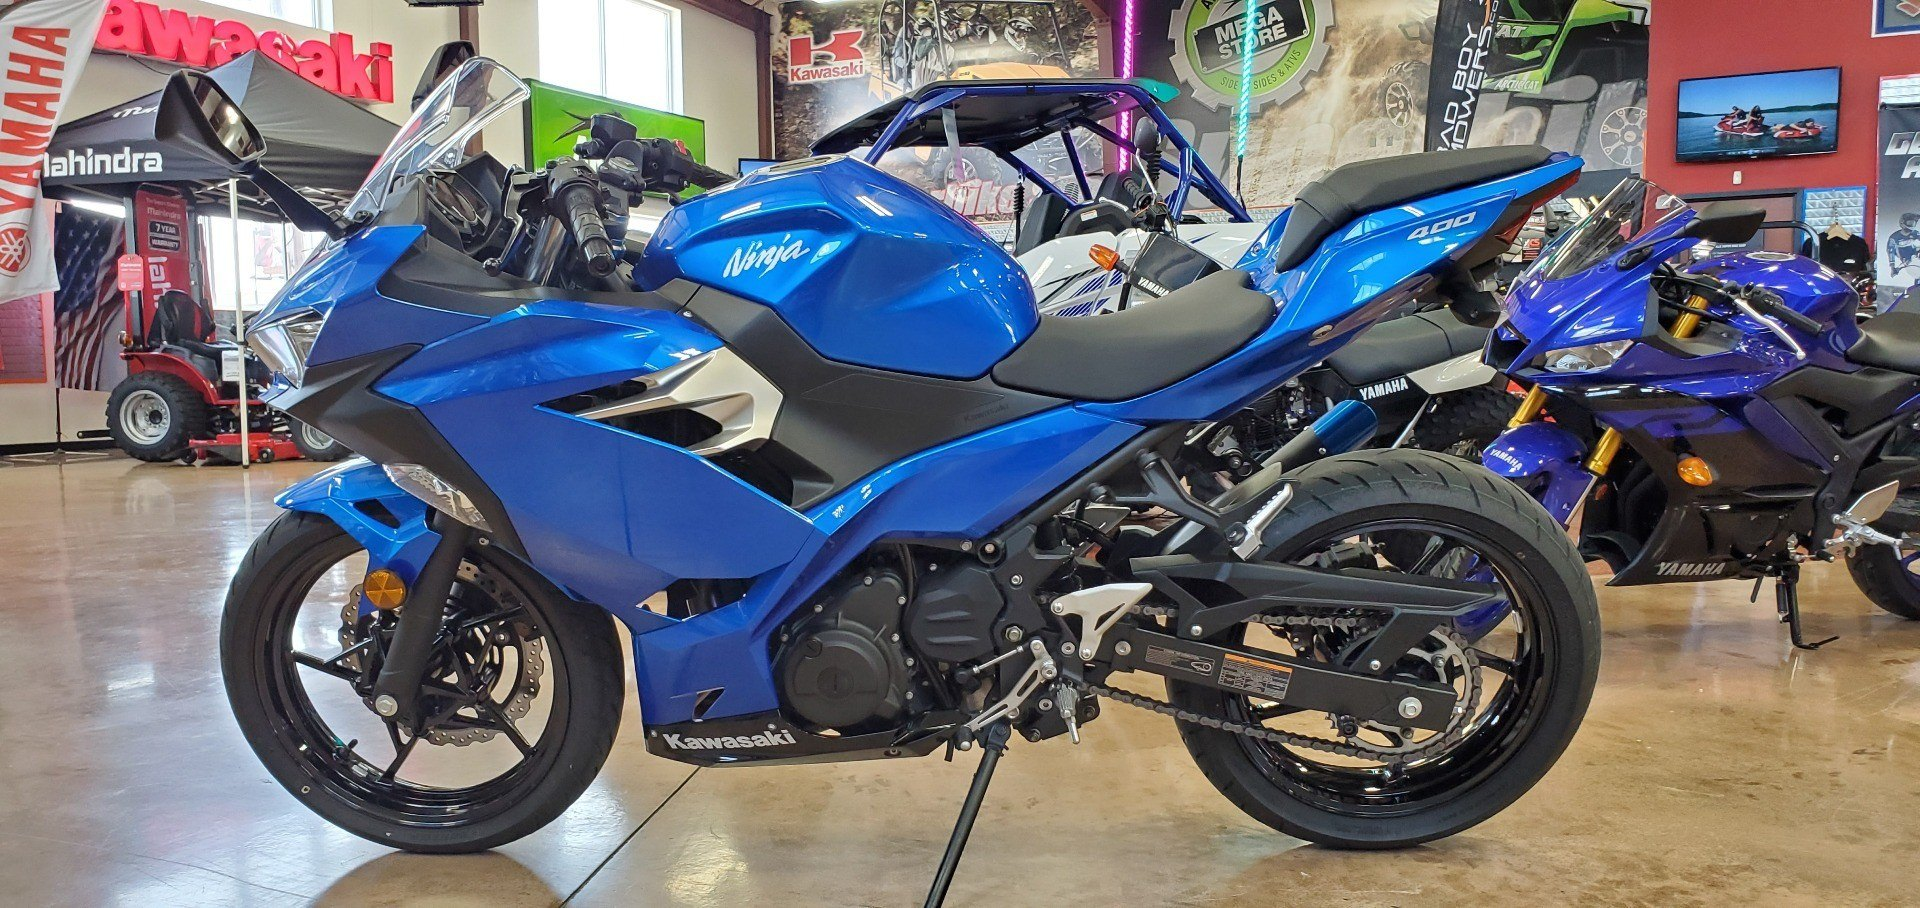 2018 Kawasaki Ninja 400 in Evansville, Indiana - Photo 4